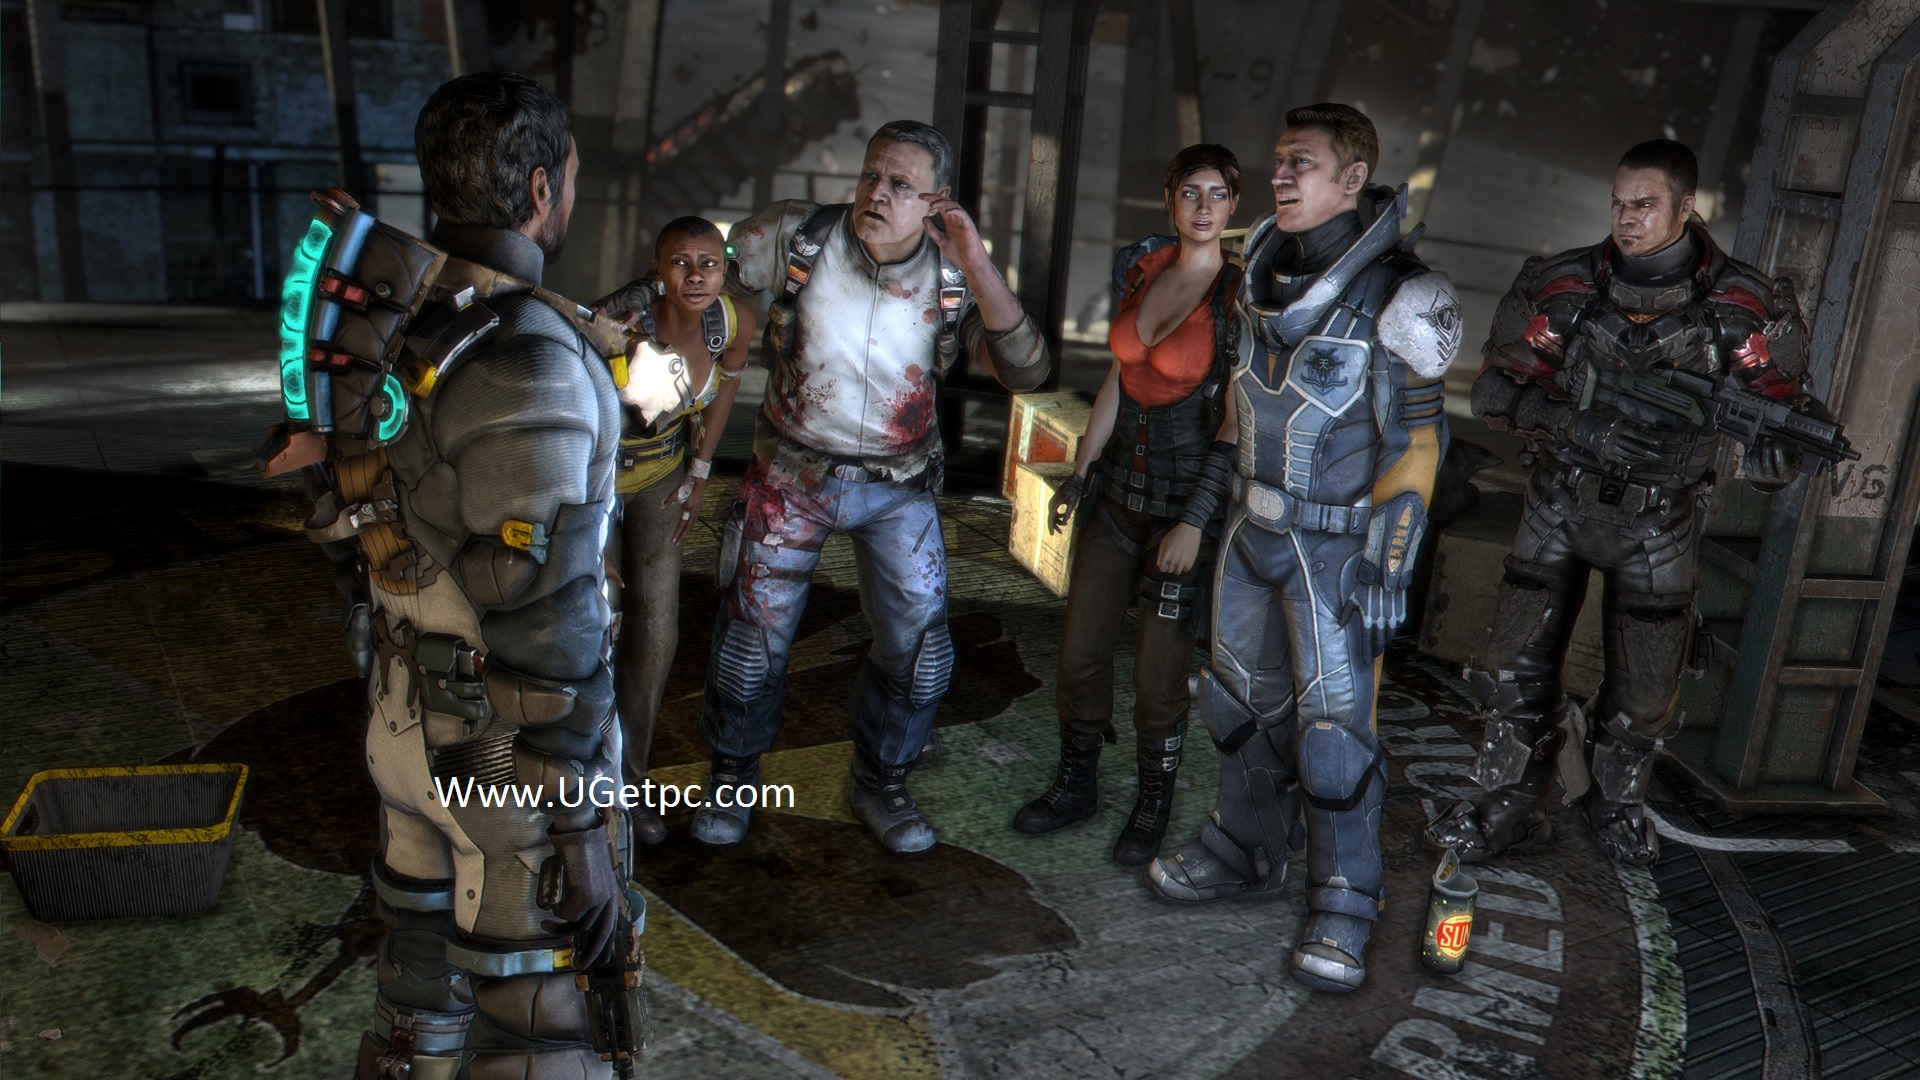 DEAD-SPACE-3-pic-UGetpc